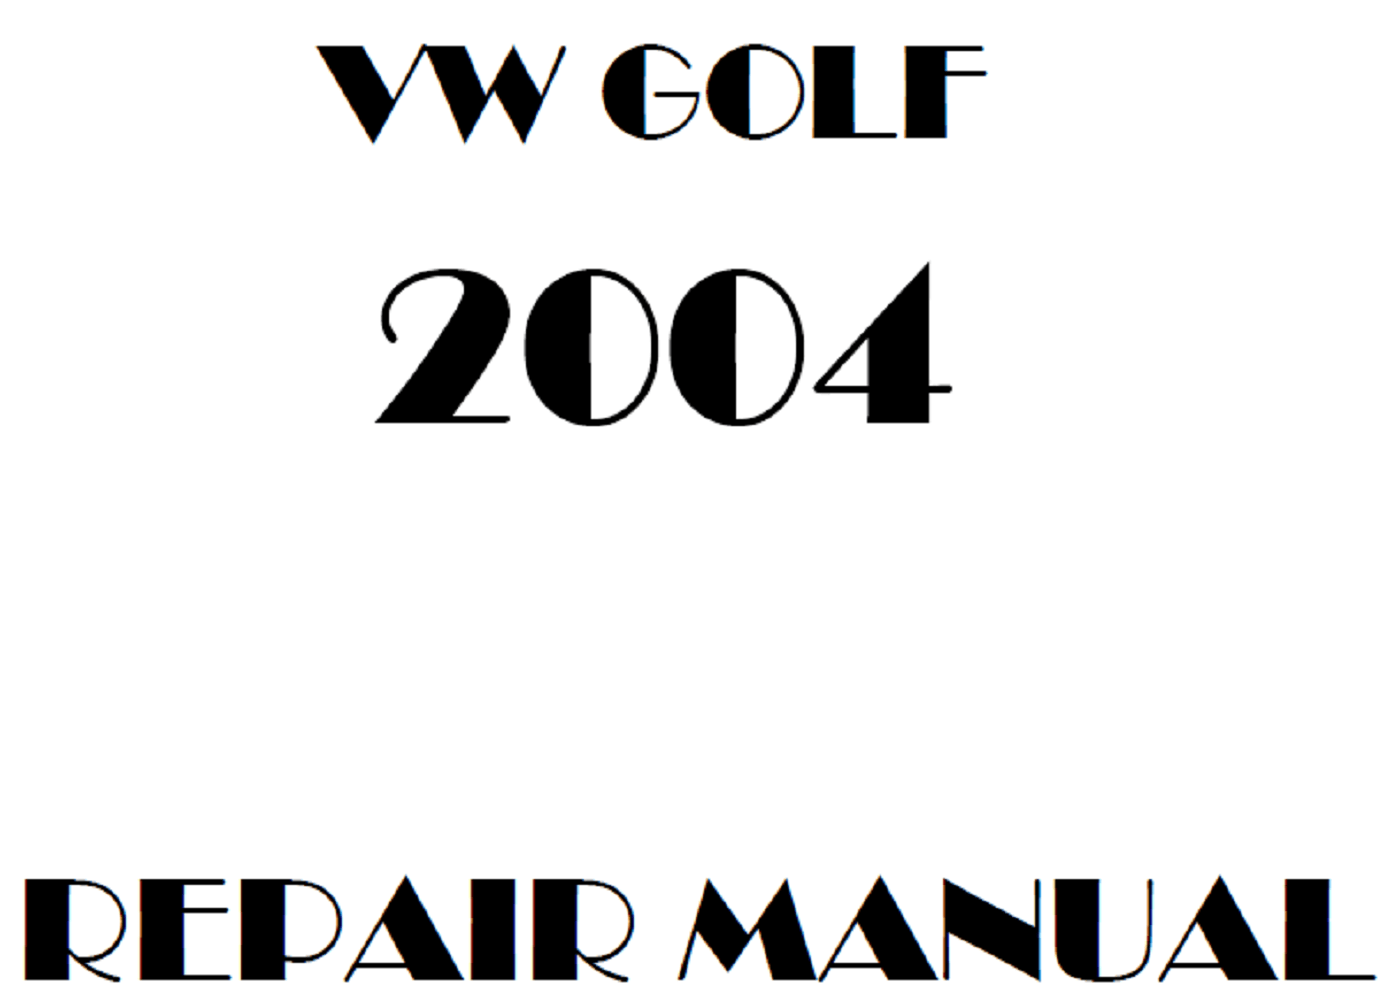 2004 Volkswagen Golf repair manual